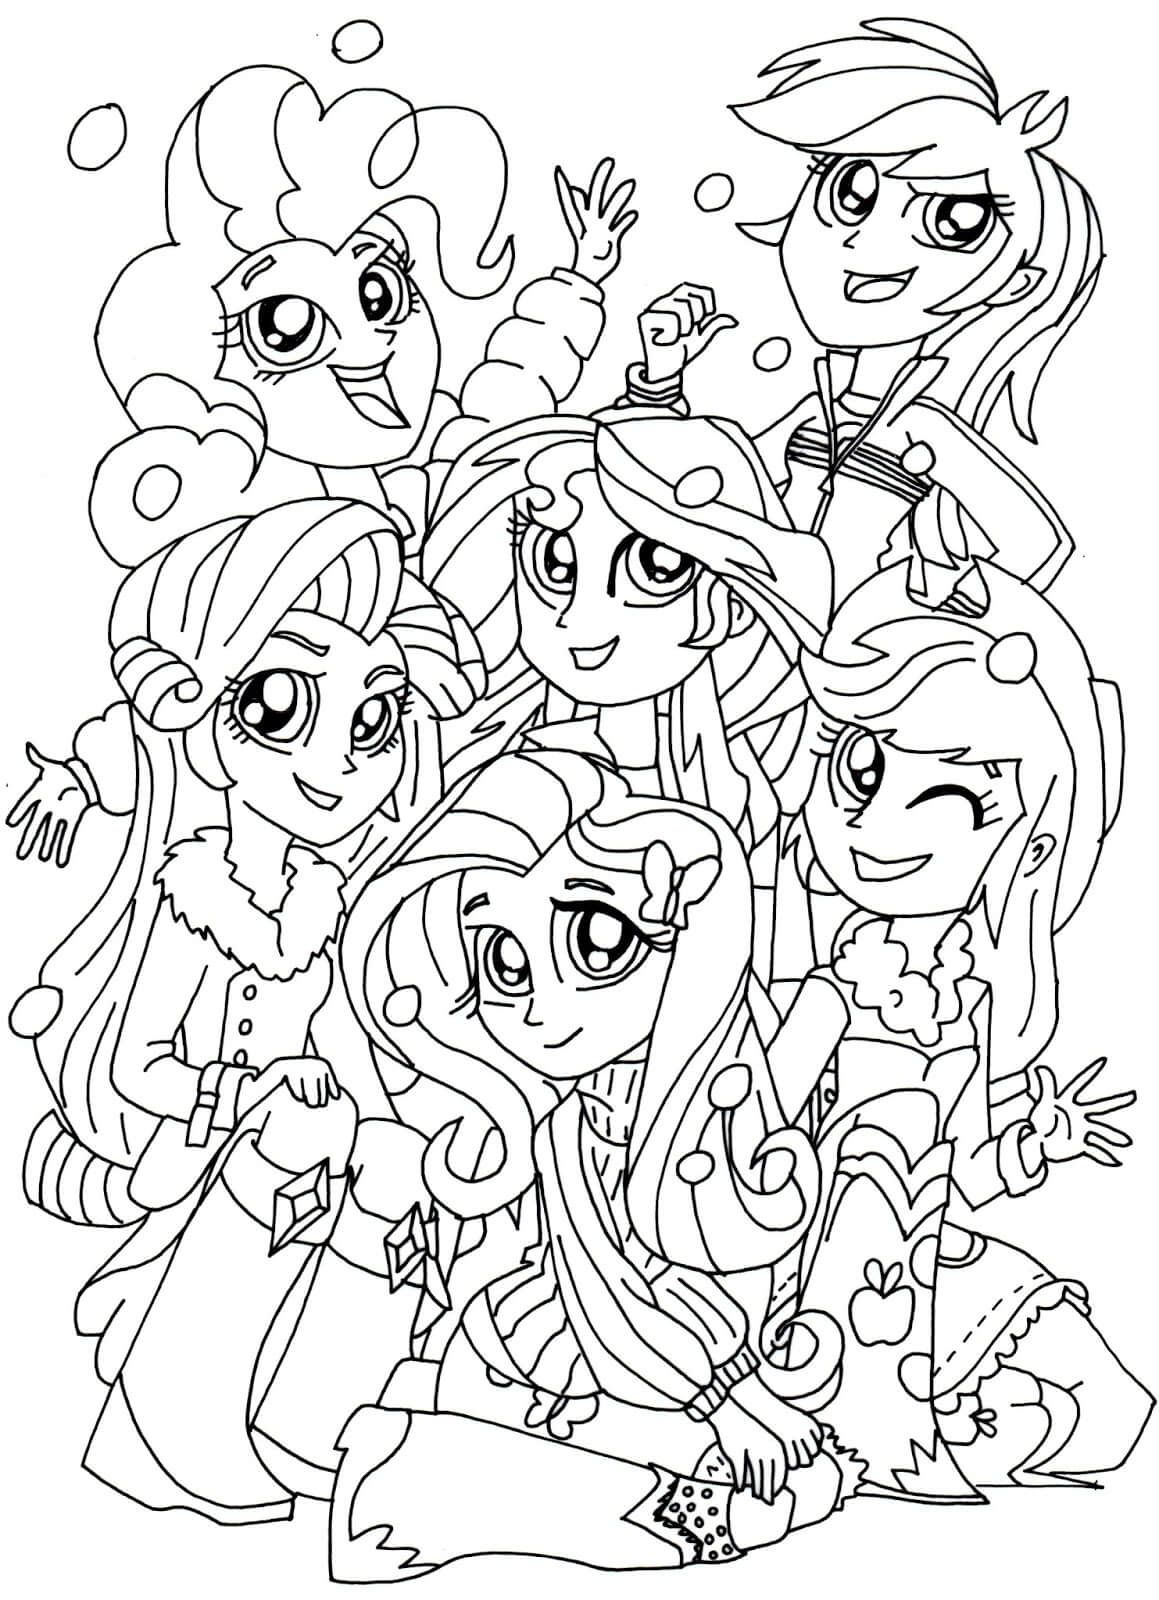 Ausmalbilder My Little Pony Equestria : My Little Pony Equestria Girls Coloring Pages Equestria Girls